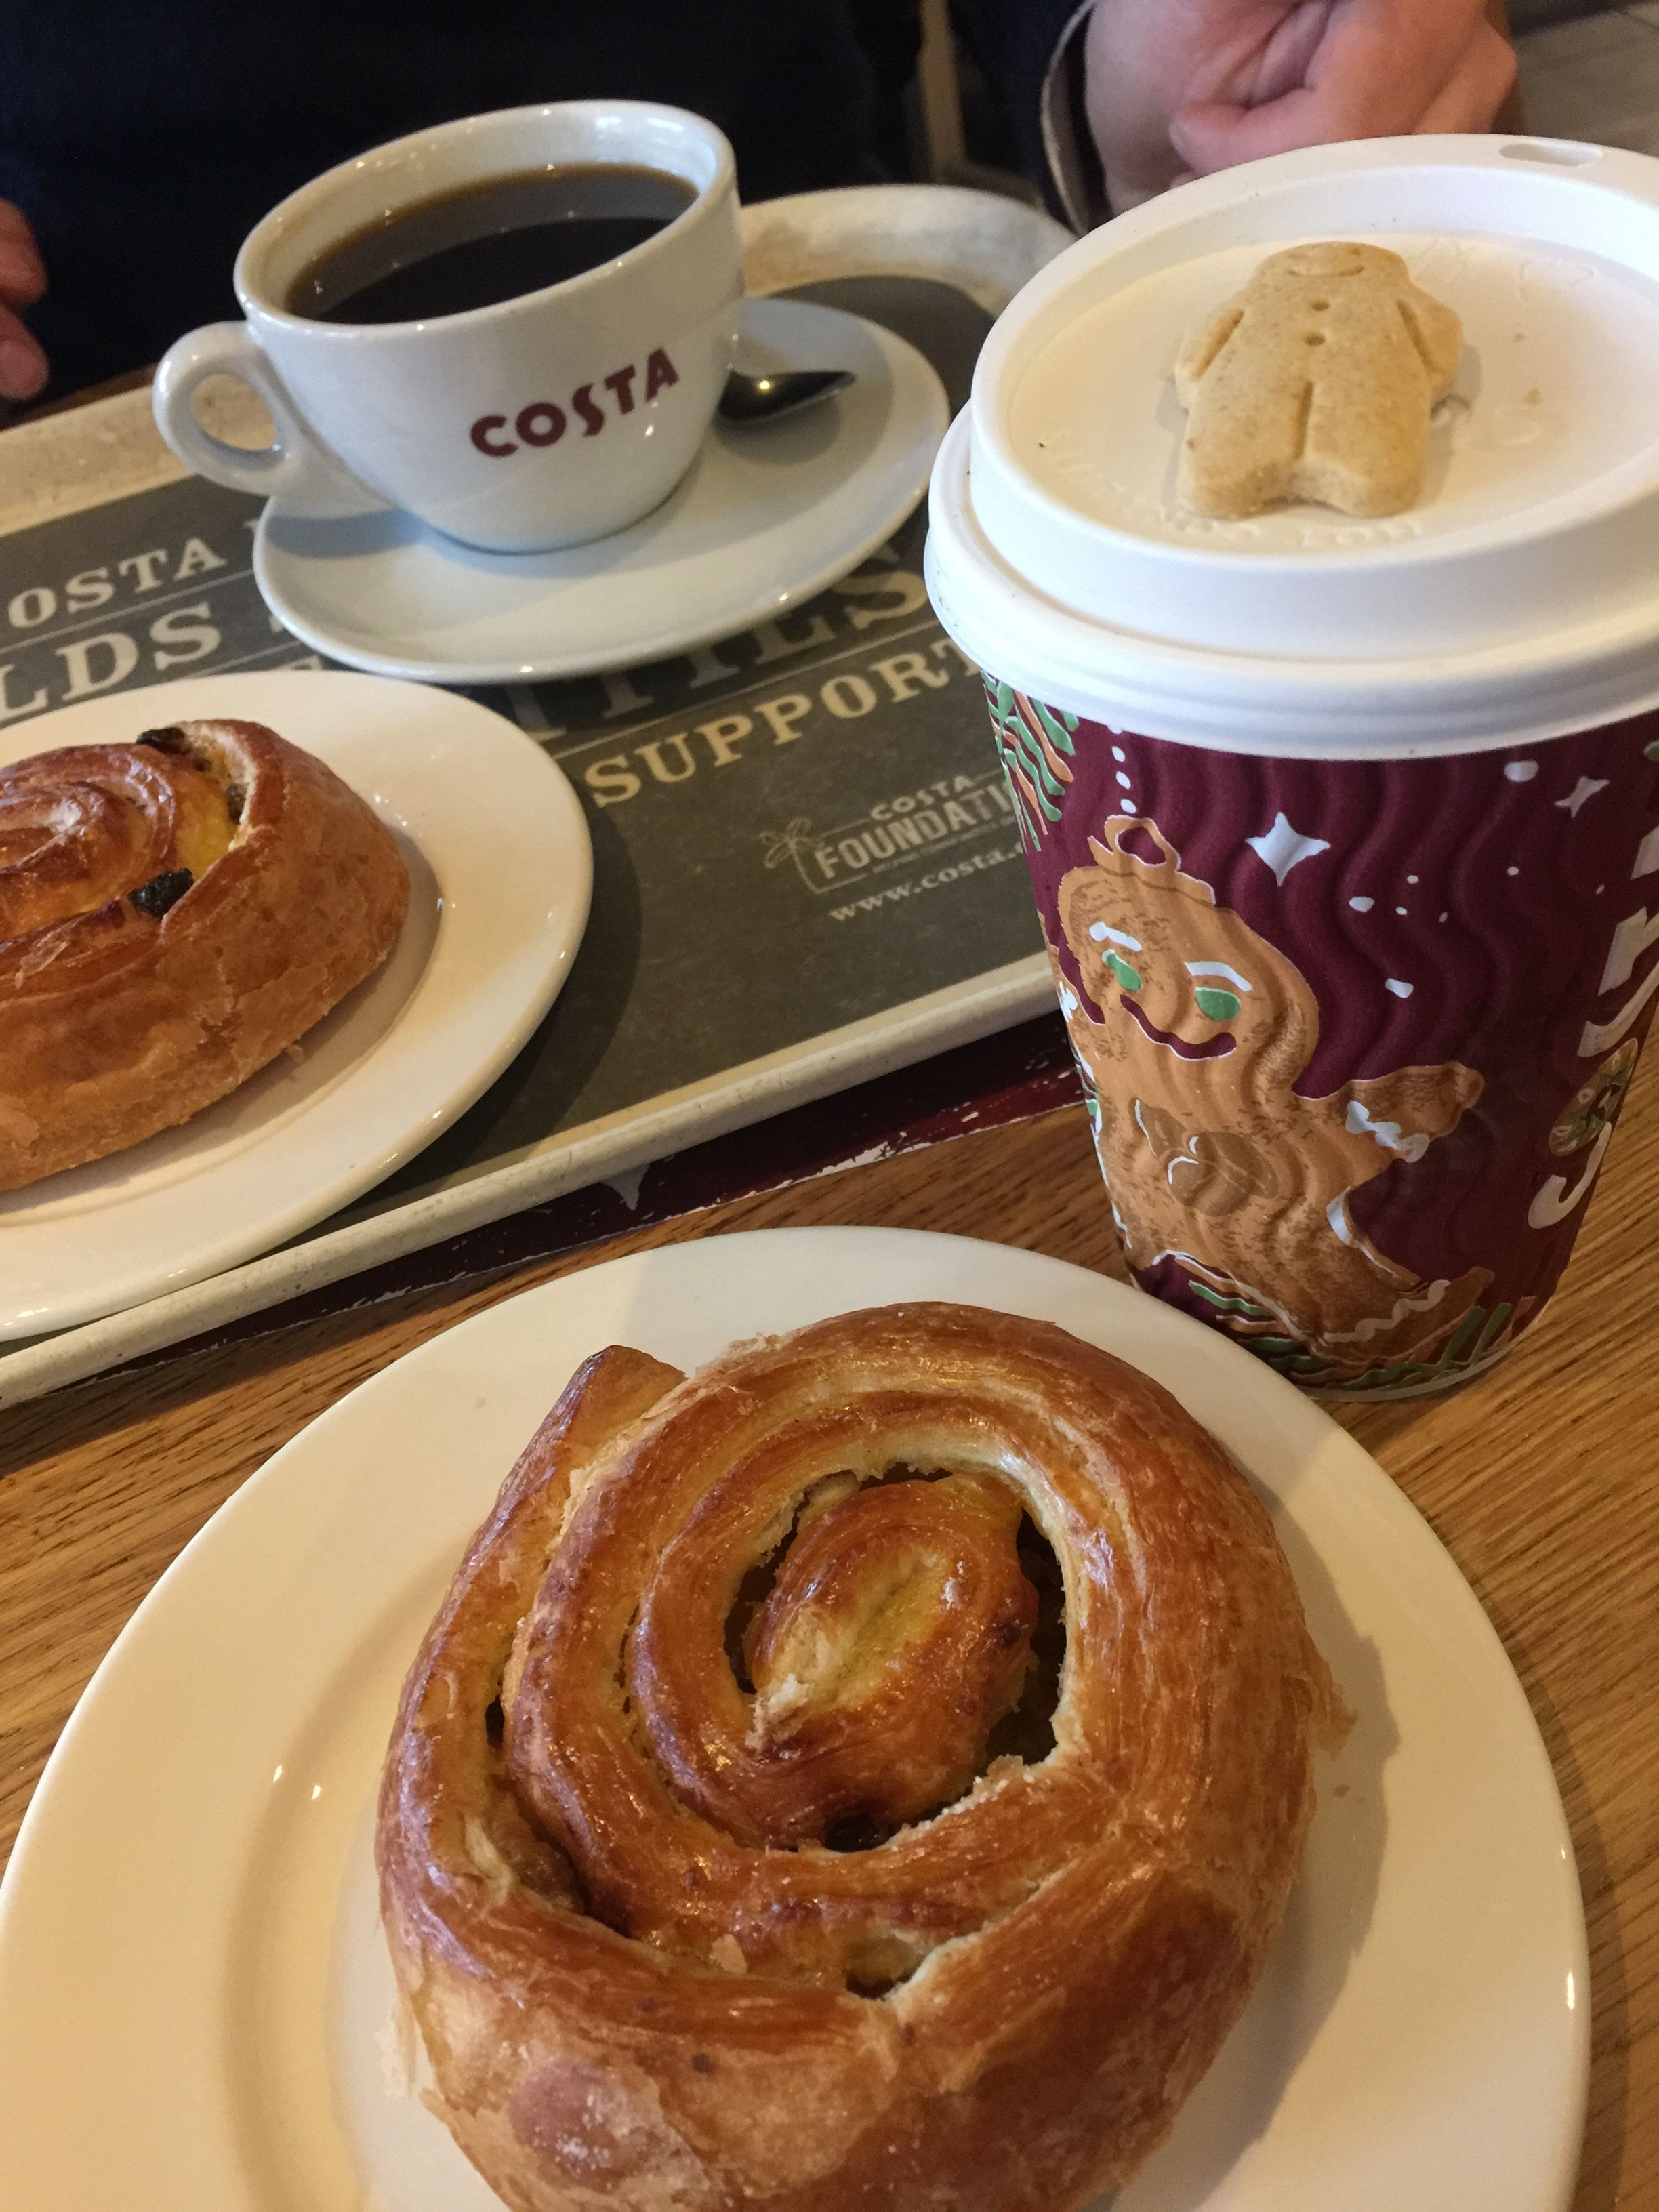 Costa Coffee We Discovered For The First Time In Scotland So Good Coffee Was The Best I Ve Ever Had Costa Coffee Great Coffee Food